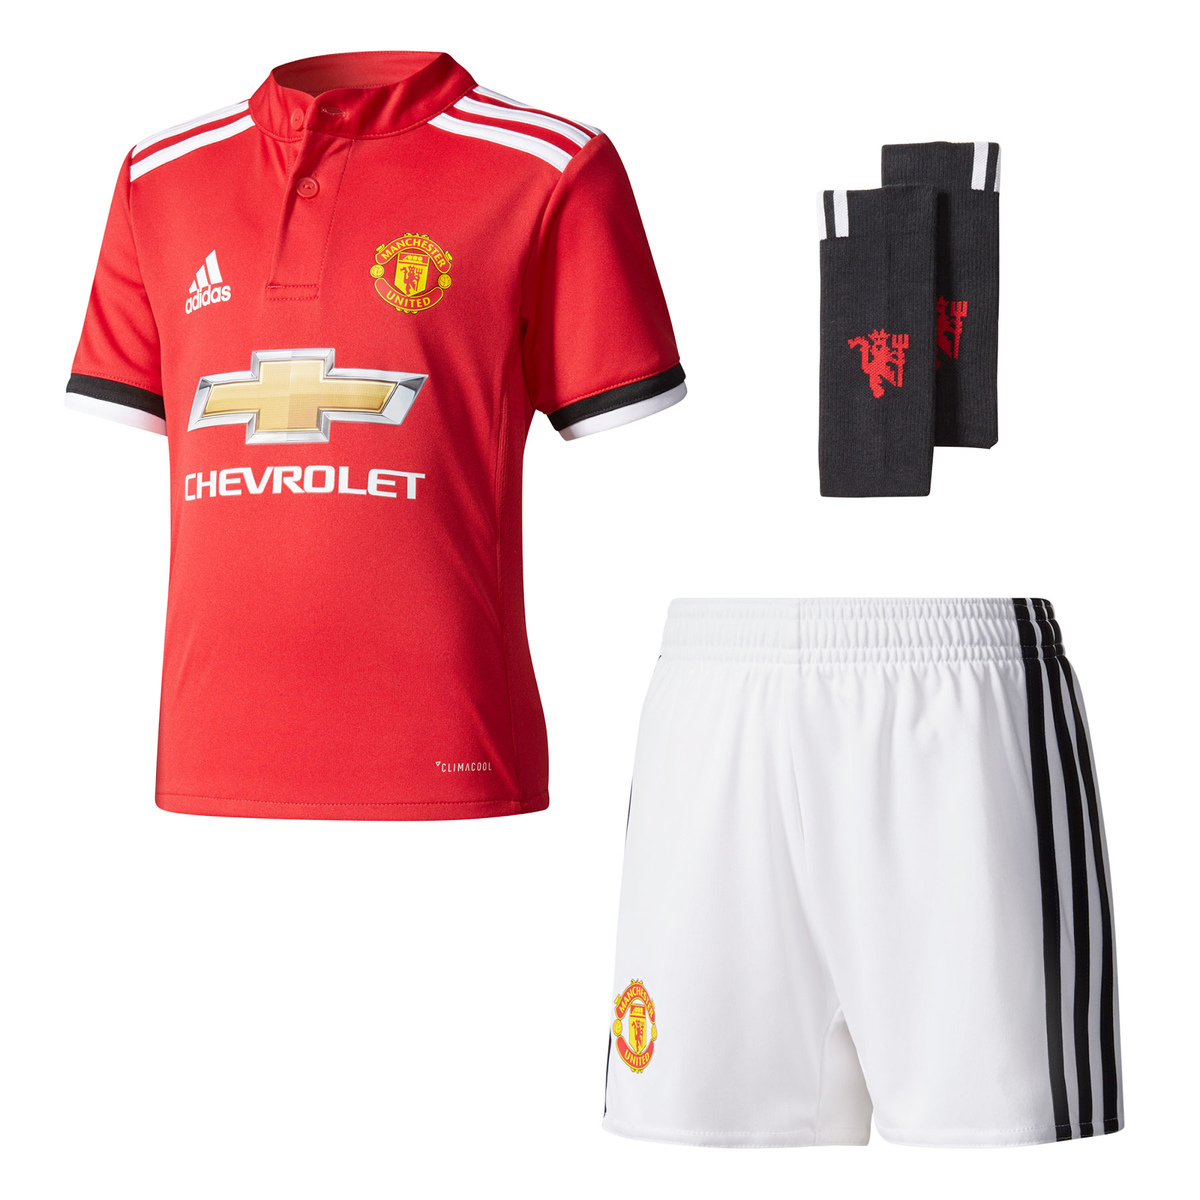 Completo Manchester United 2017 / 2018 baby